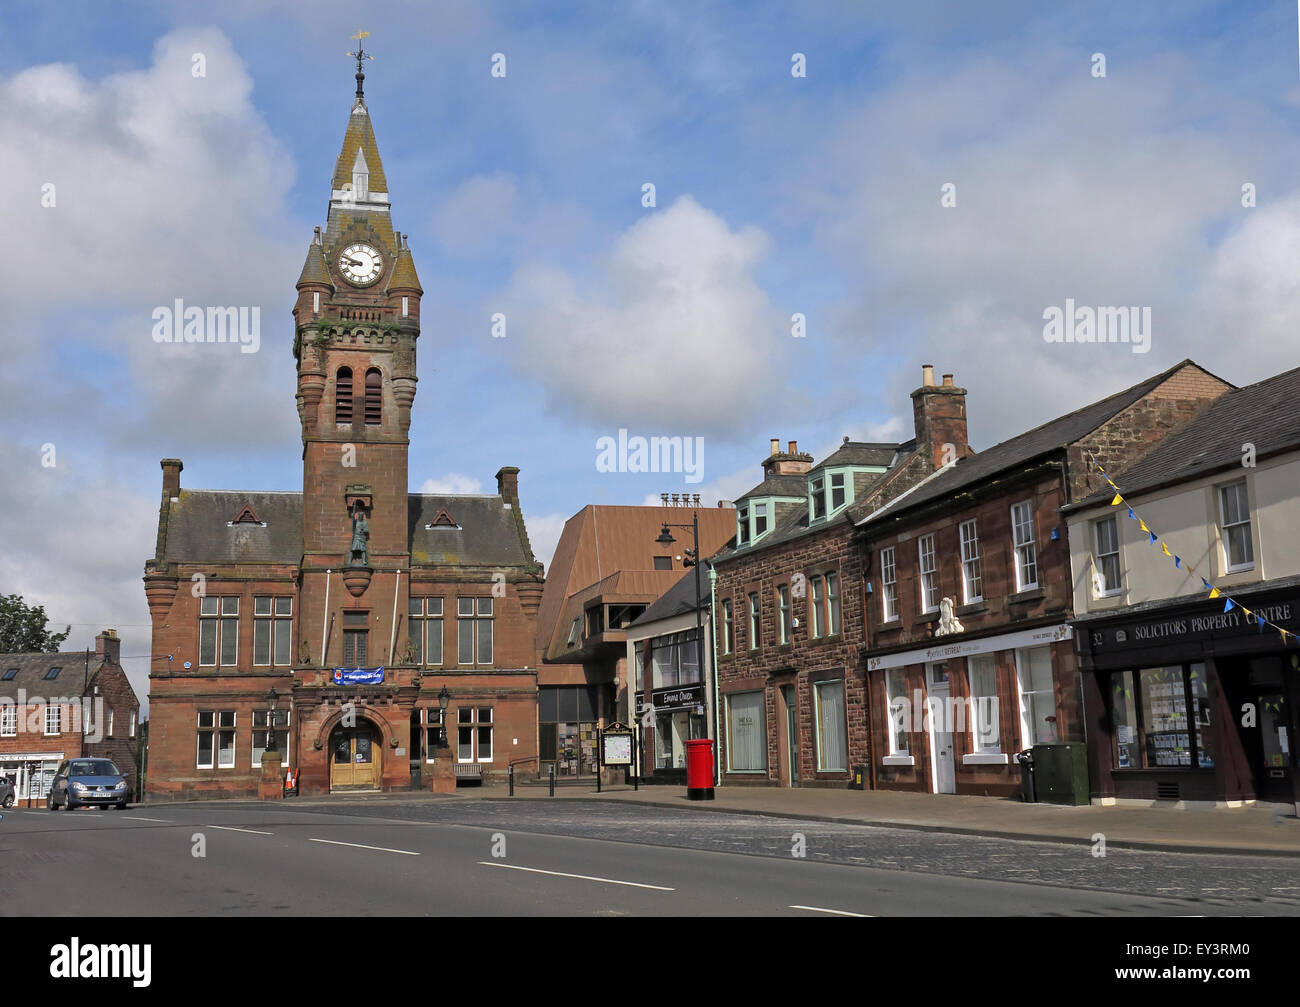 Annan town hall,Annan,Dumfries,&,Galloway,-,Municipal,buildings,Council,Offices,High,Street,Annan,DG12 6AQ,stone,historic,history,Victorian,royal,burgh,in,south-west,Scotland,sandstone,Dumfries and Galloway,GoTonySmith,Buy Pictures of,Buy Images Of,Scotlands History,Scotlands History